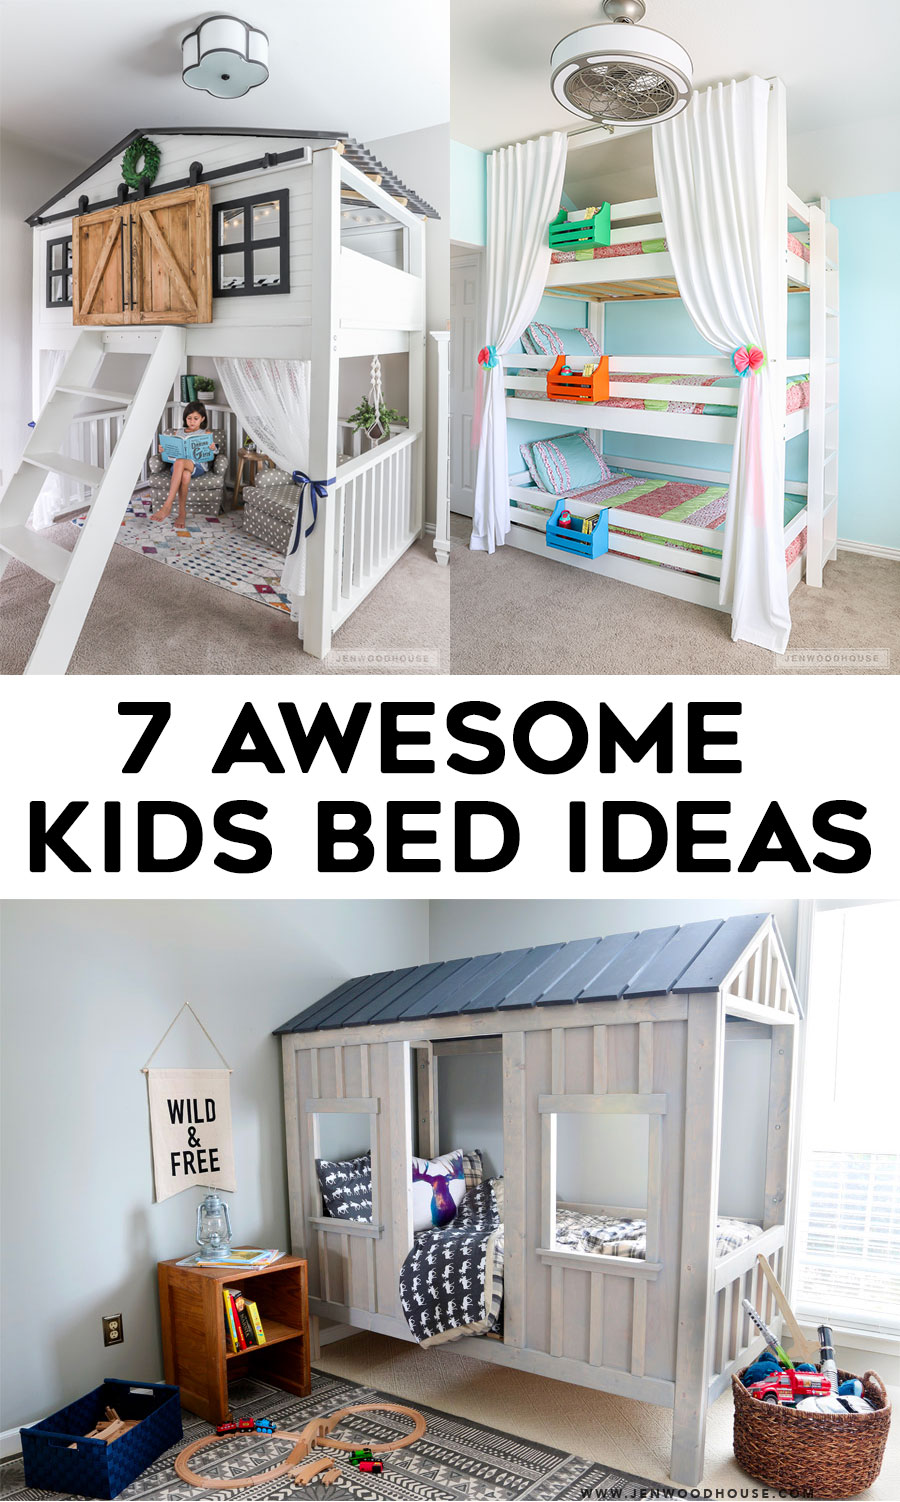 Cheap Kids Beds Online 7 Awesome Diy Kids Bed Plans Bunk Beds Loft Beds The House